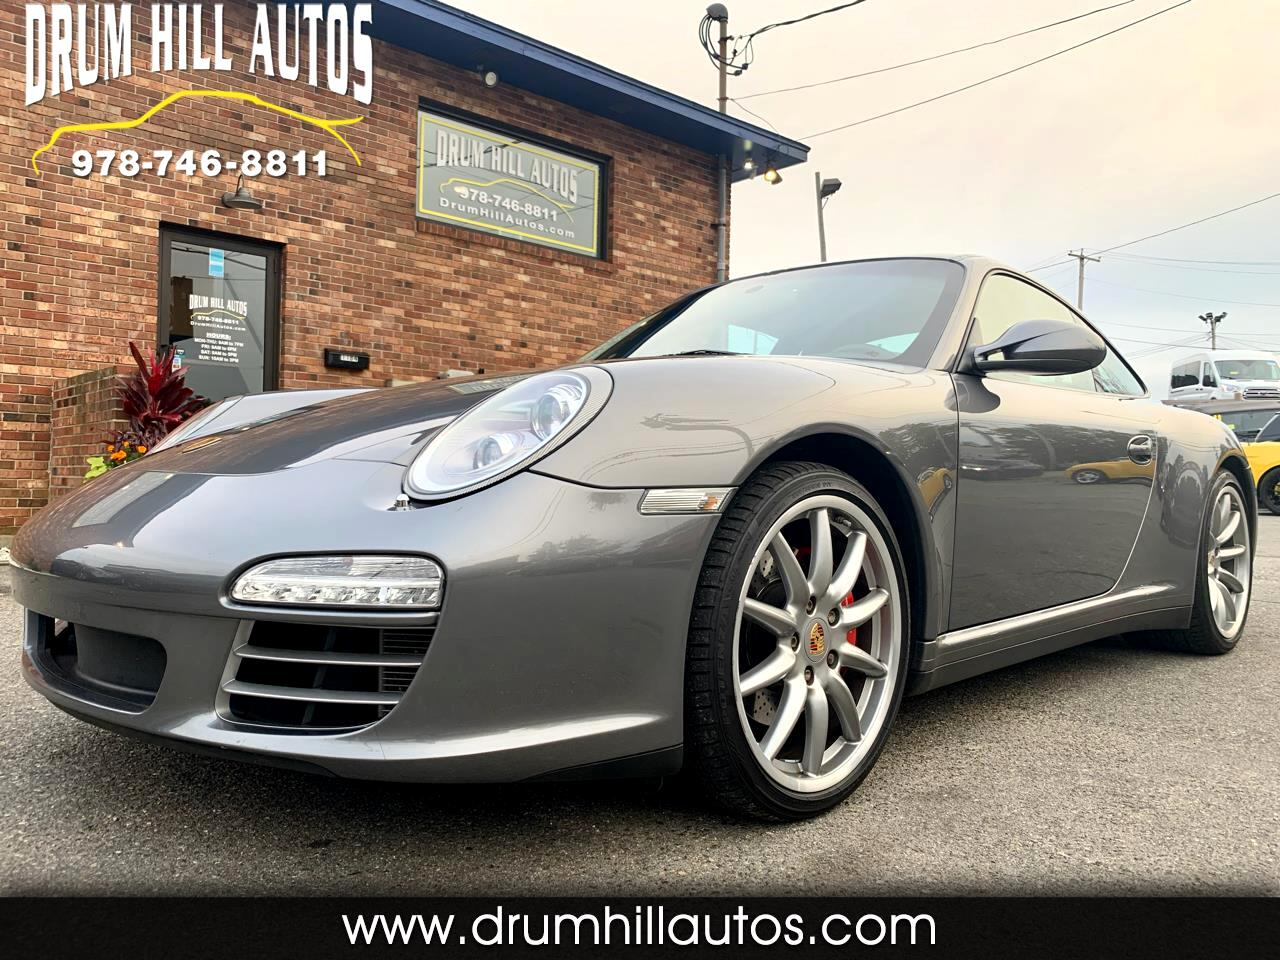 2010 Porsche 911 Carrera 4S Coupe